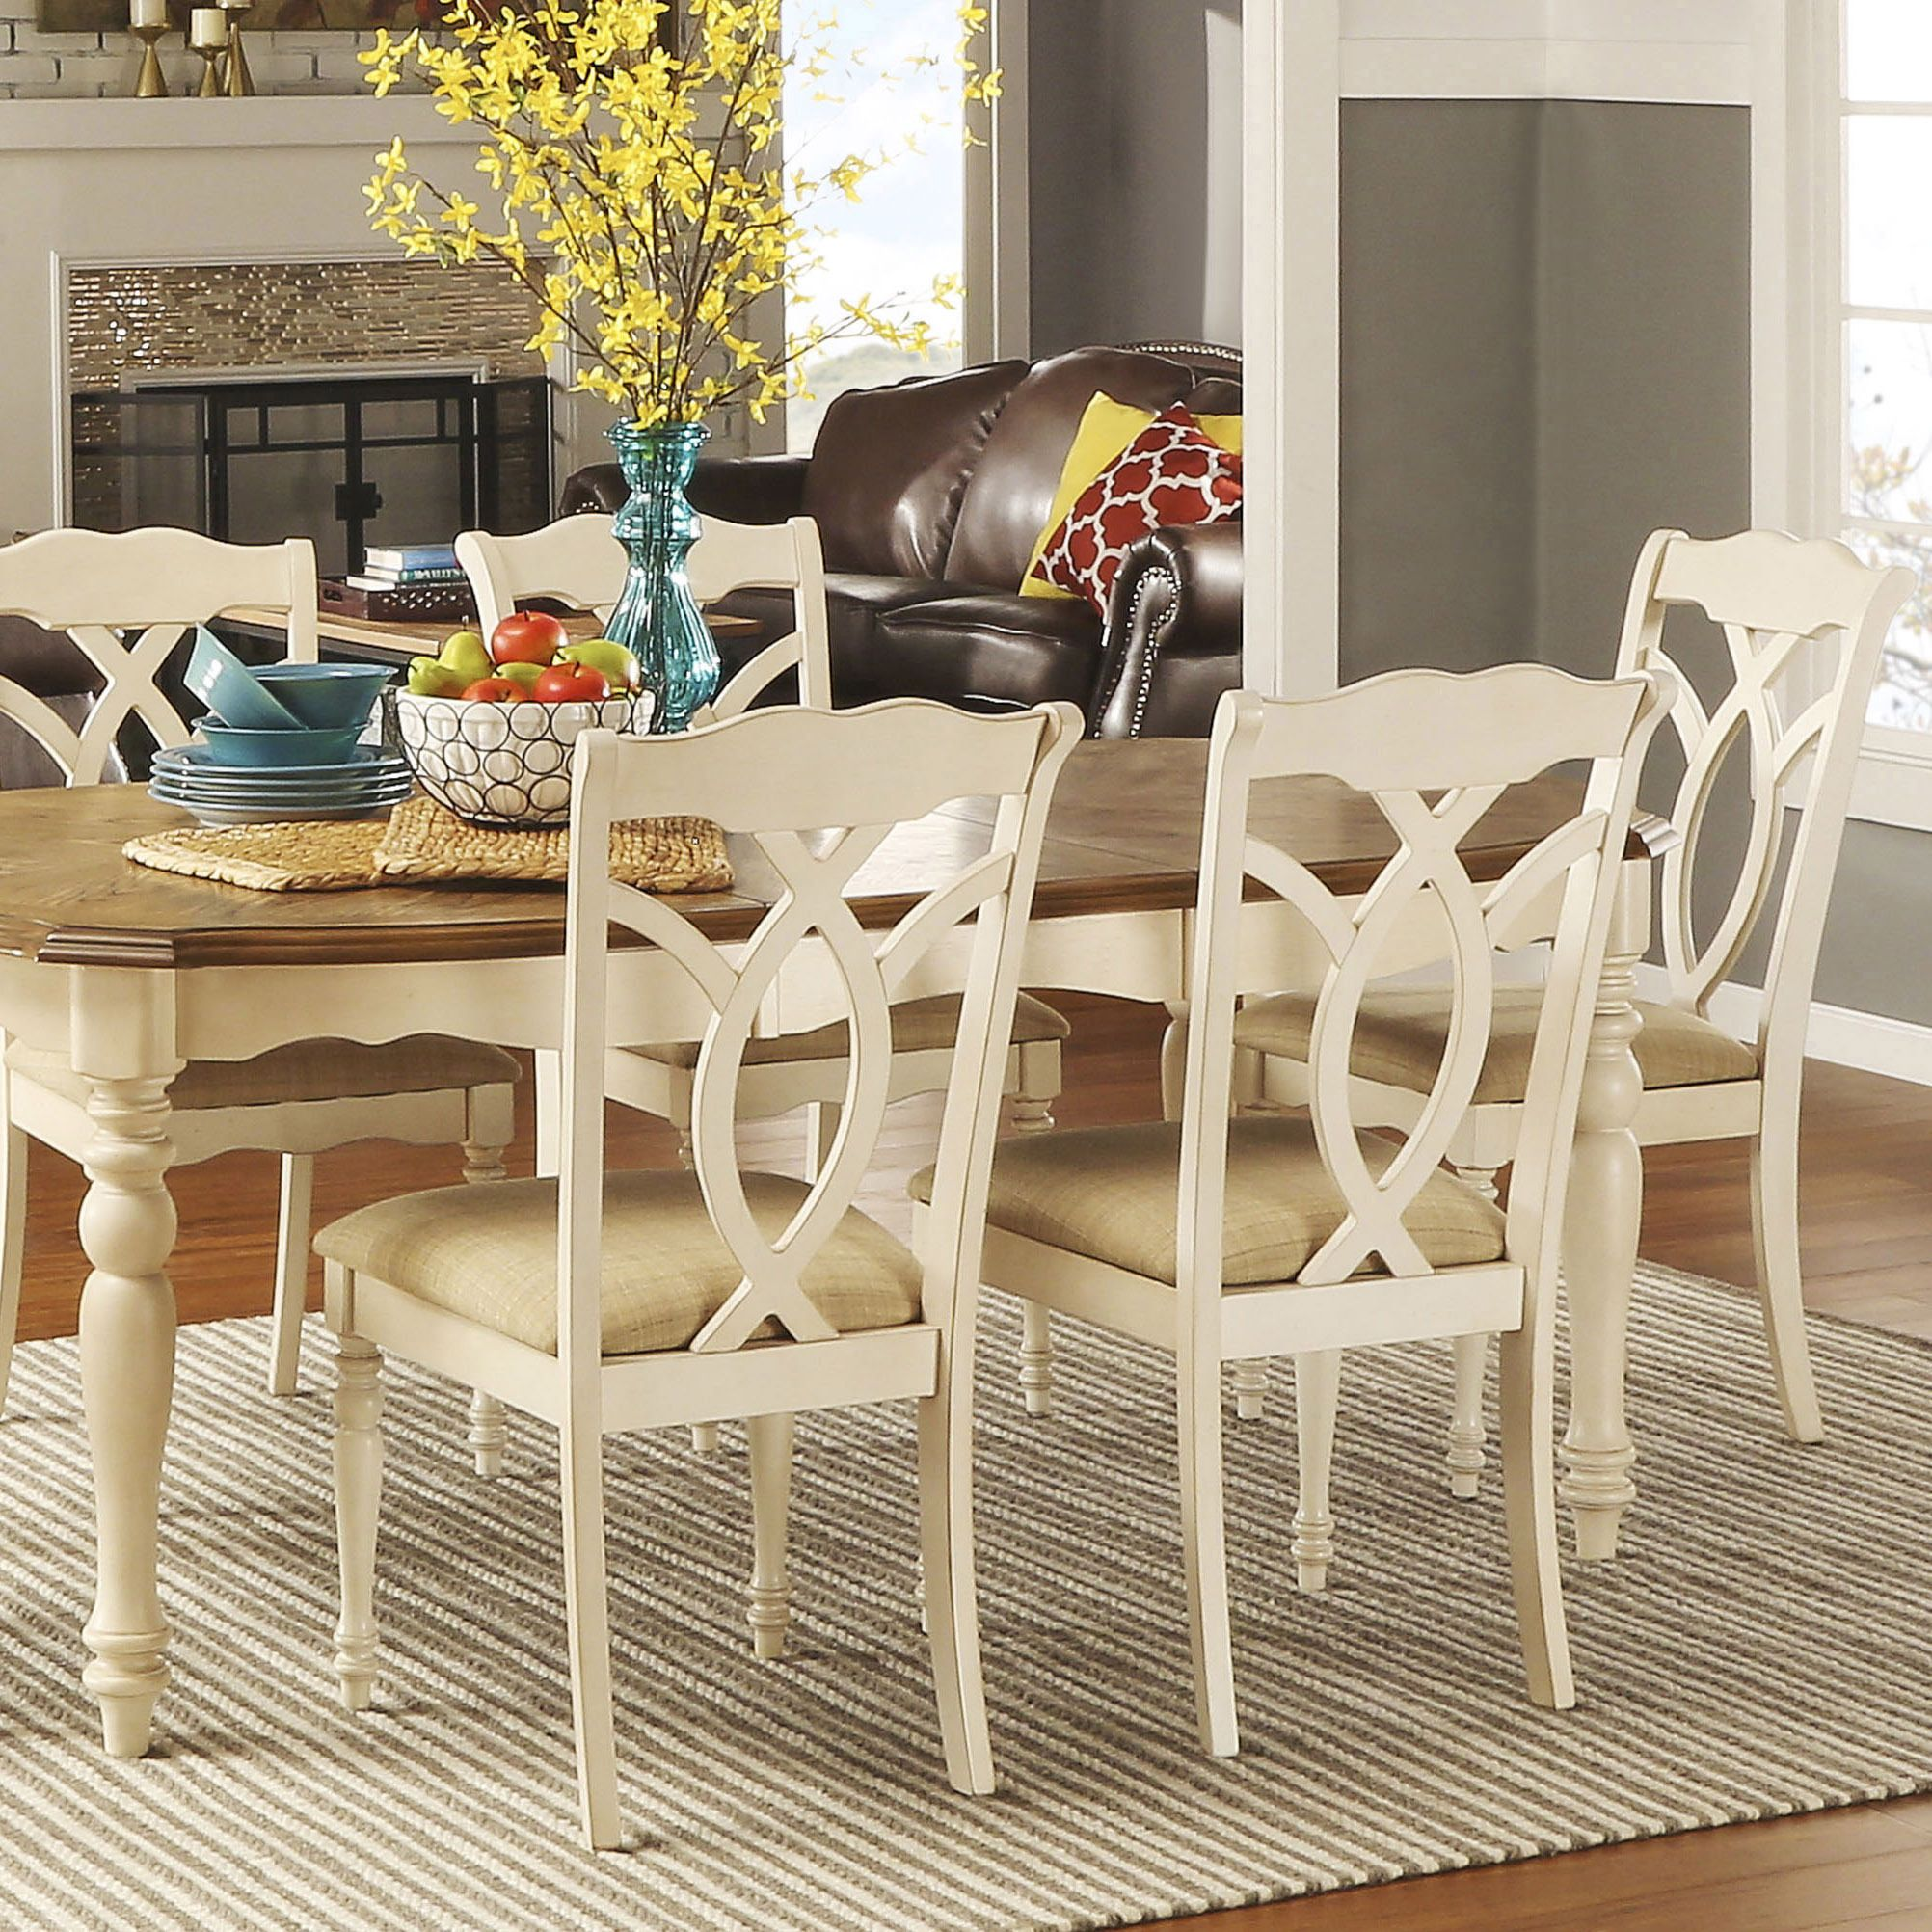 Shayne Country Antique White Beige Dining Chairs Set Of 2 By Inspire Q Classic Beige Dining Chair White Kitchen Chairs Shabby Chic Table And Chairs